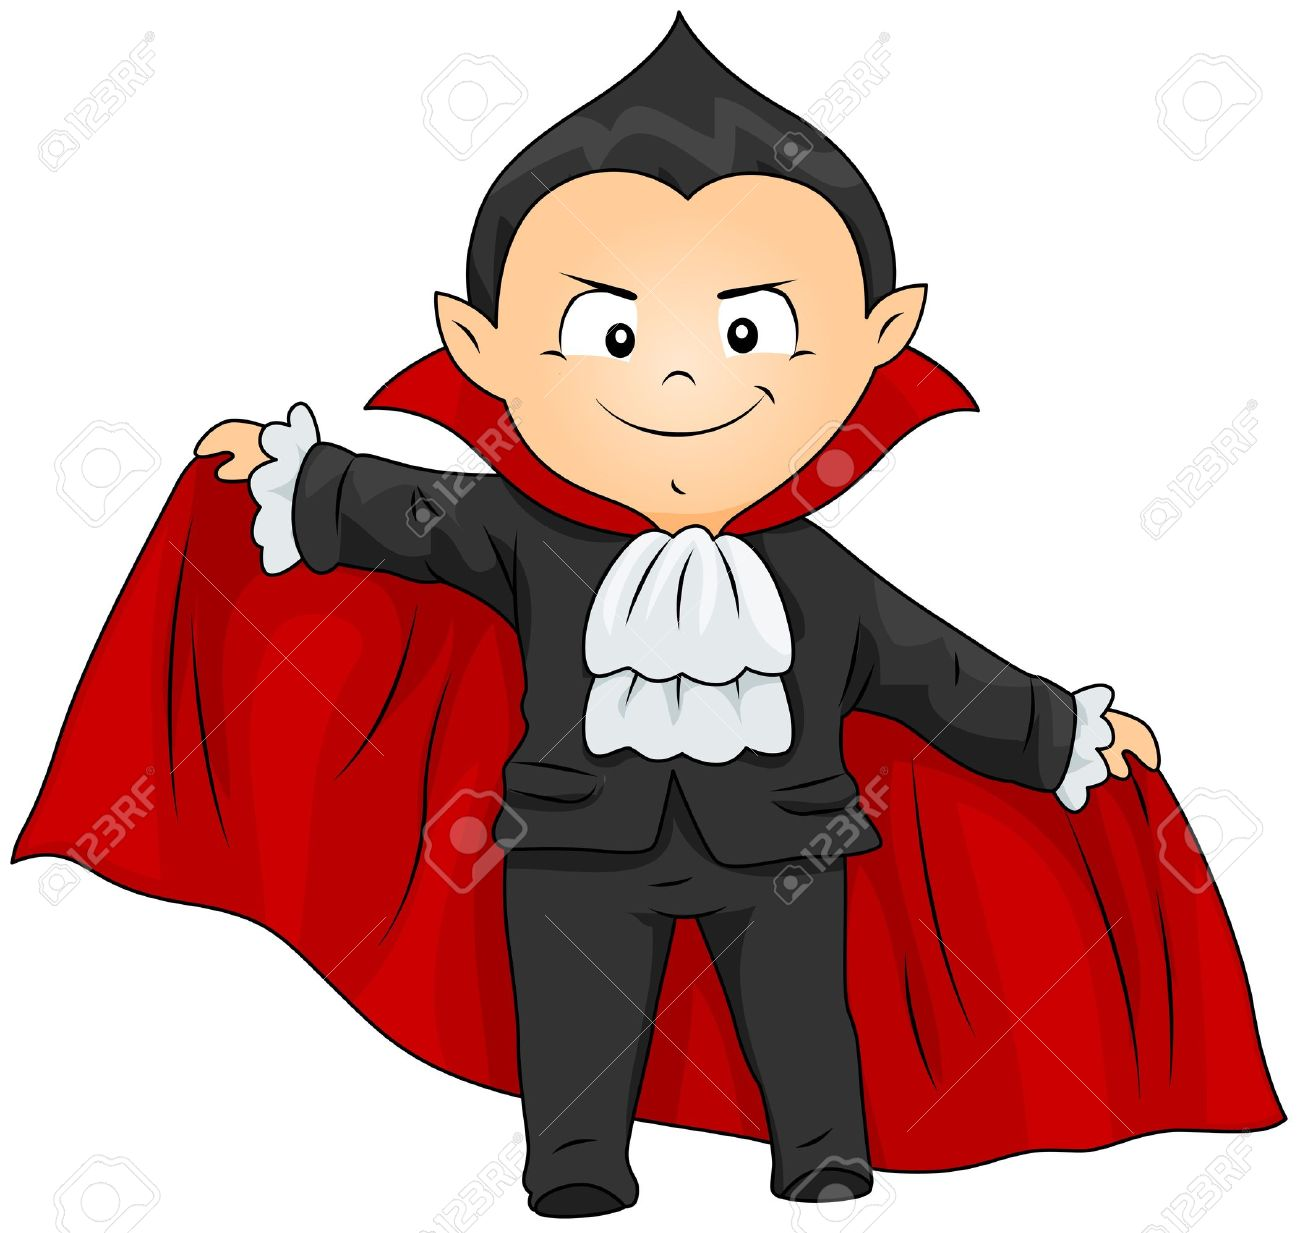 Animated dracula clipart graphic freeuse download Cartoon Pictures Of Vampires | Free download best Cartoon Pictures ... graphic freeuse download